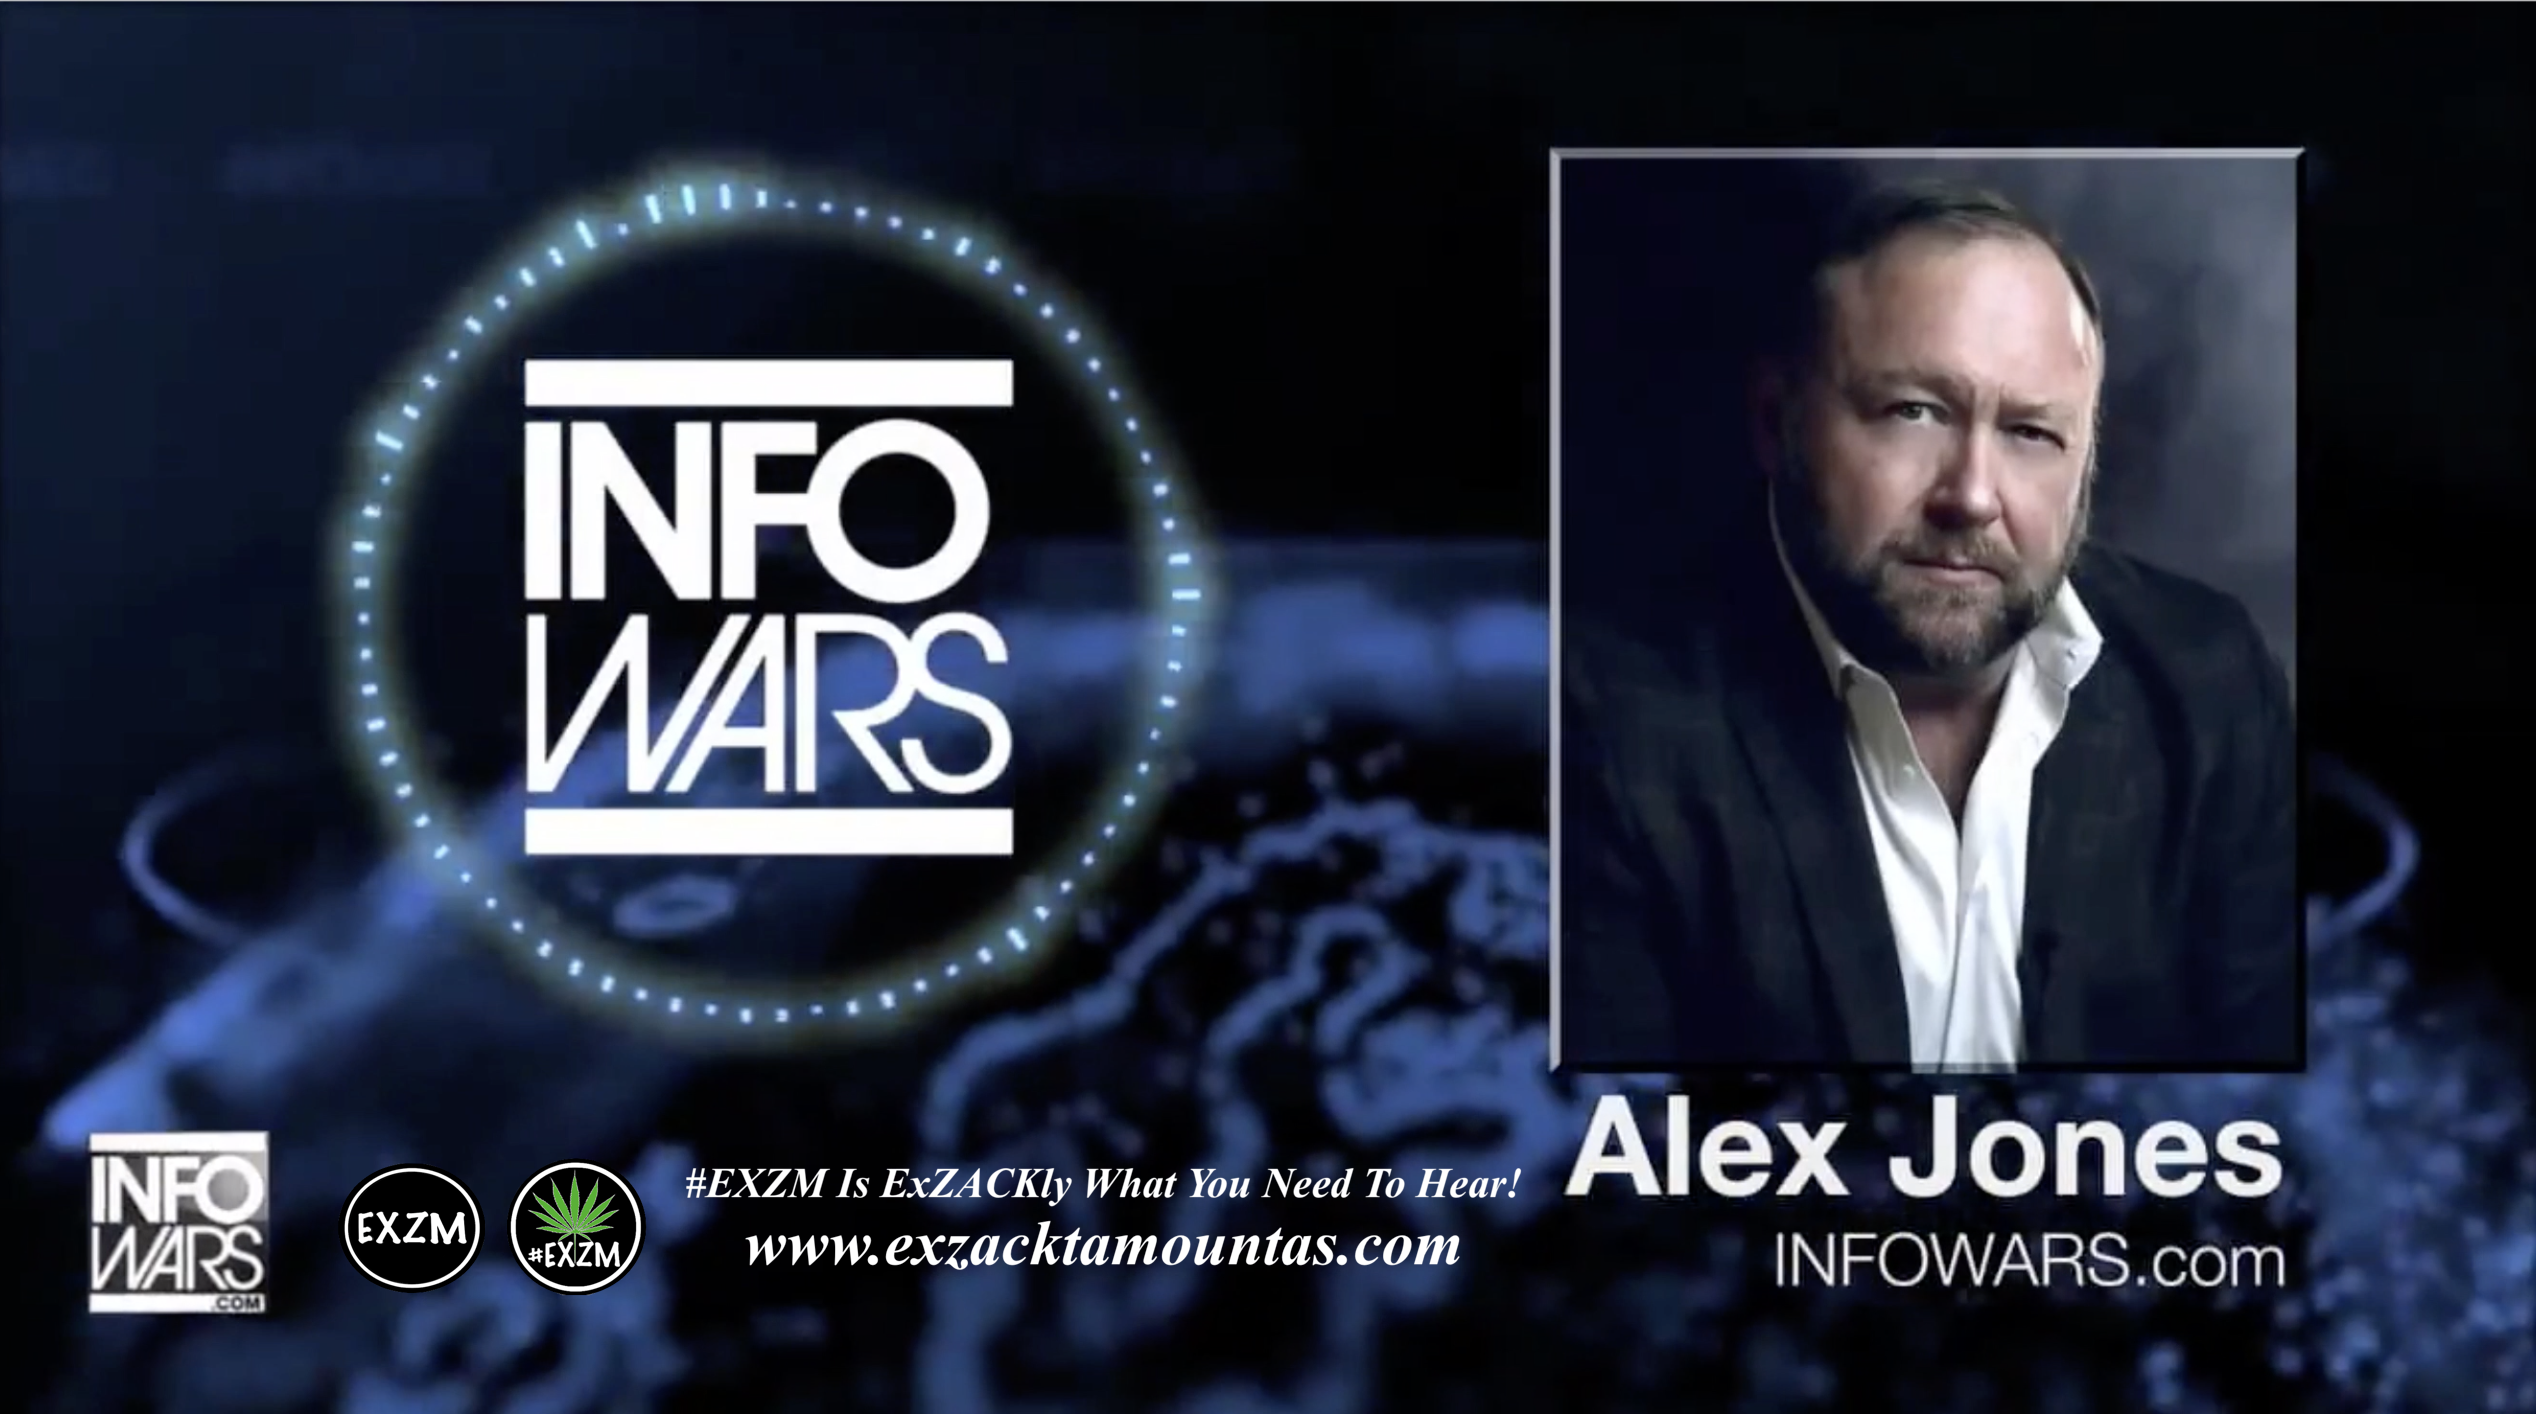 Alex Jones Live Infowars Studio EXZM Zack Mount May 16th 2021 copy